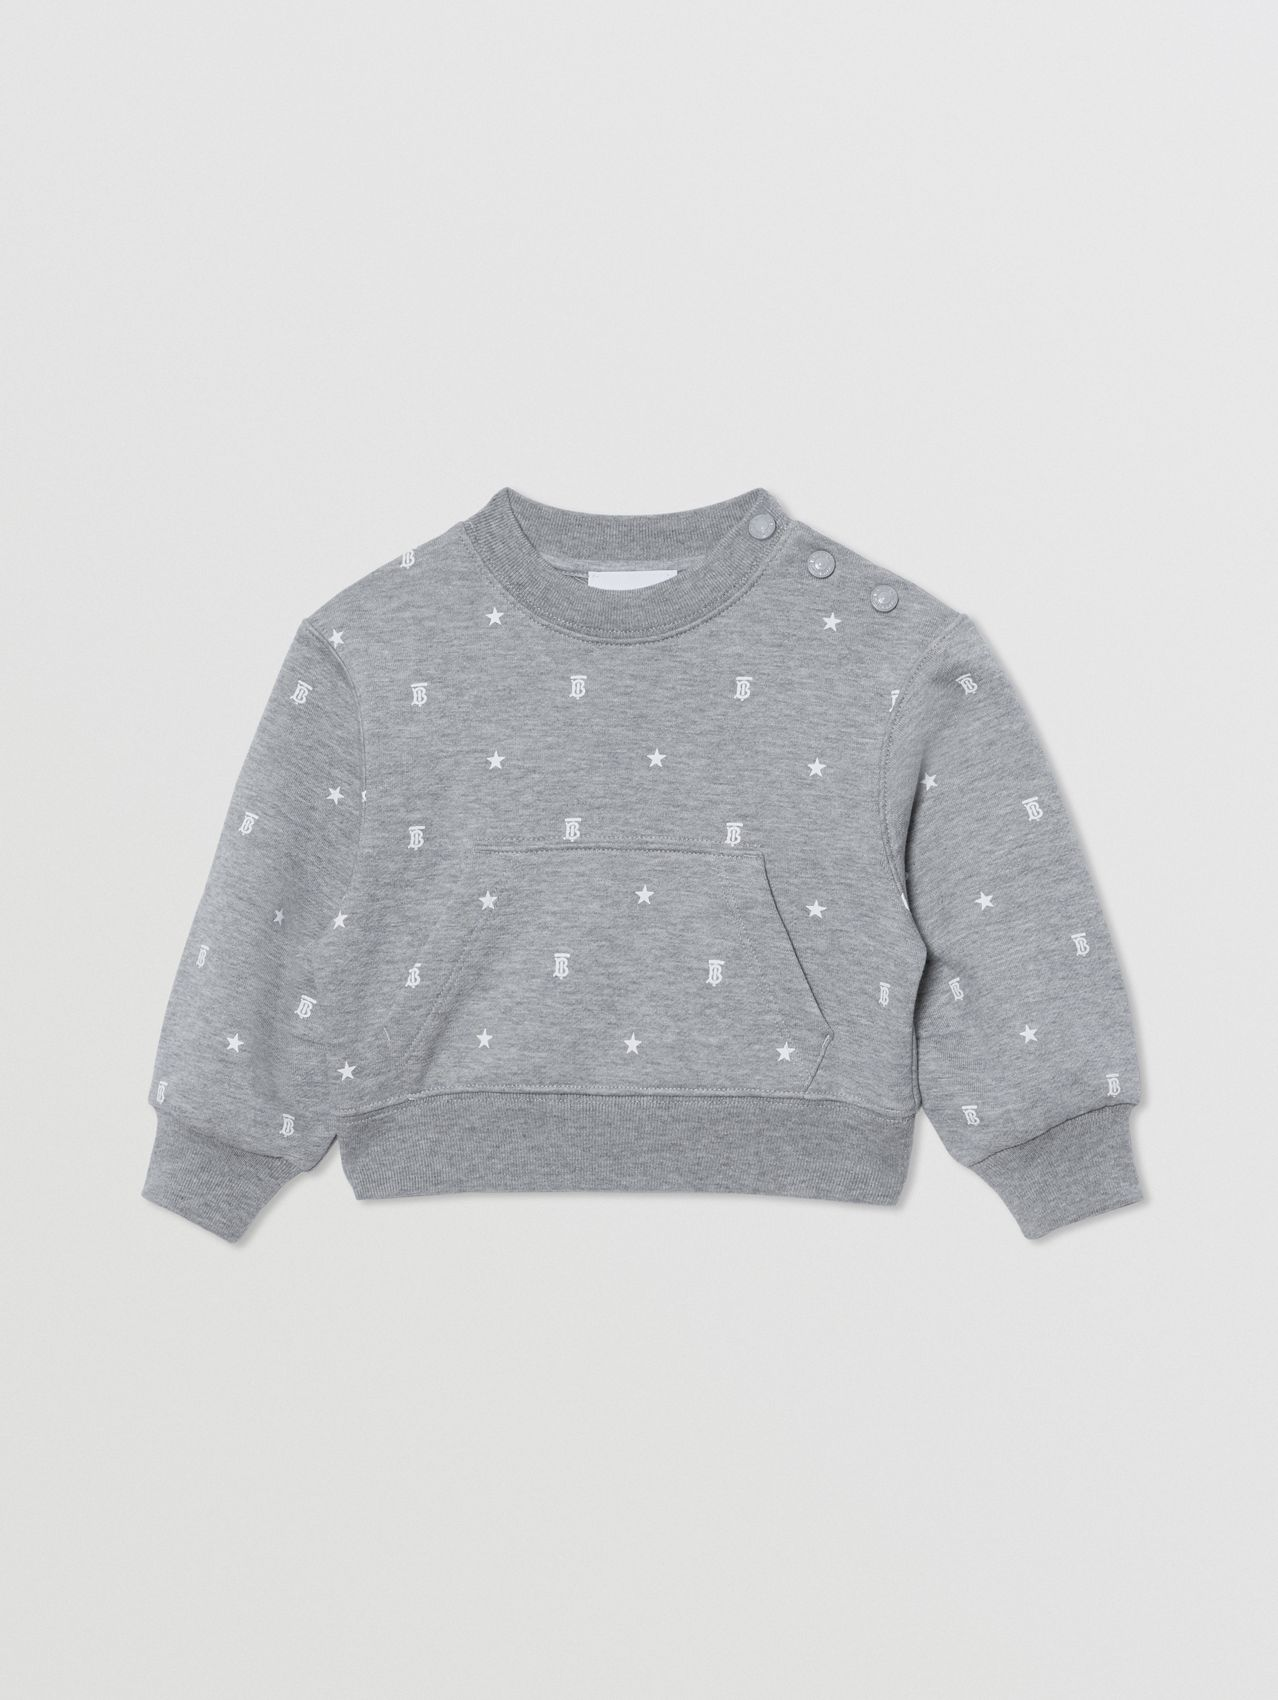 Star and Monogram Motif Cotton Sweatshirt in Grey